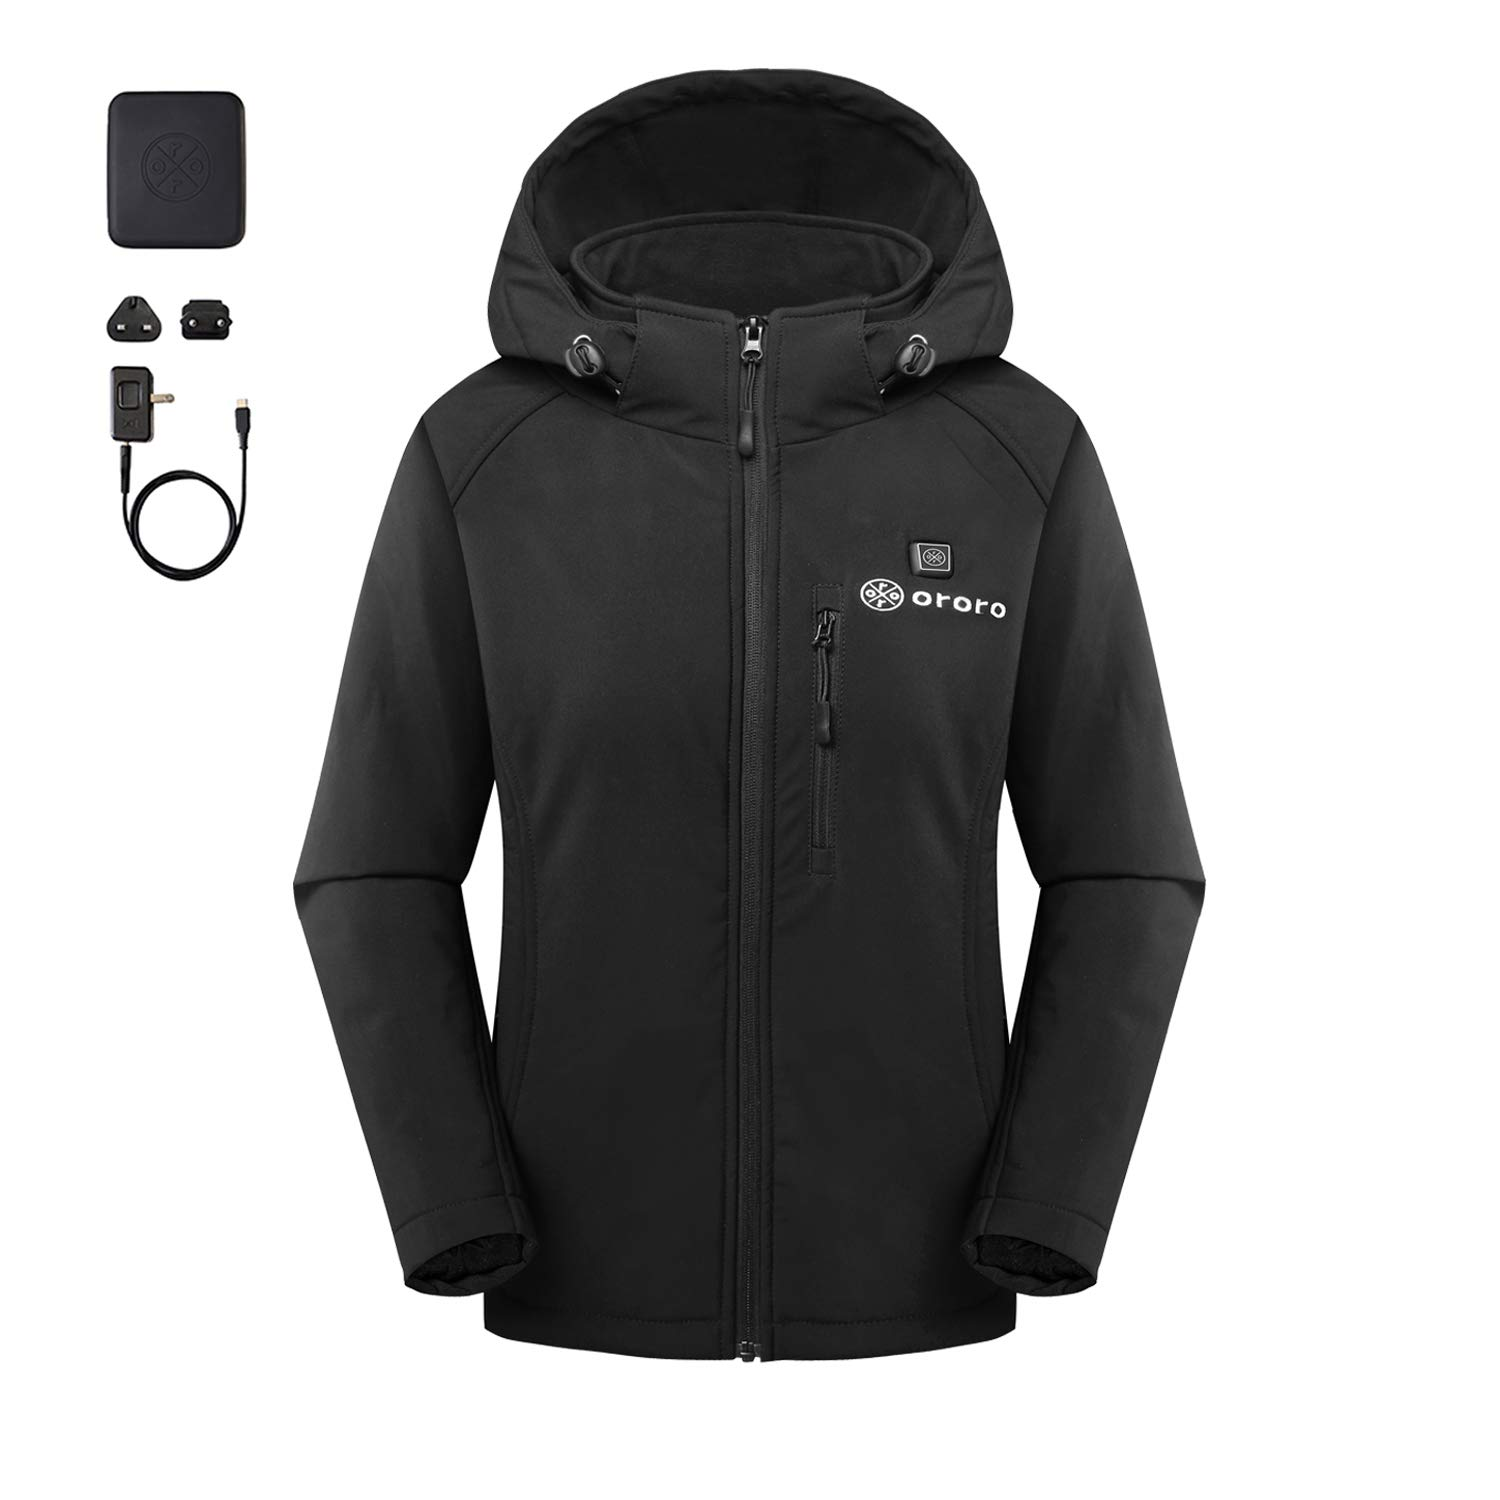 5aad3fa7285f Amazon.com  ororo Women s Slim Fit Heated Jacket with Battery Pack and  Detachable Hood  Clothing